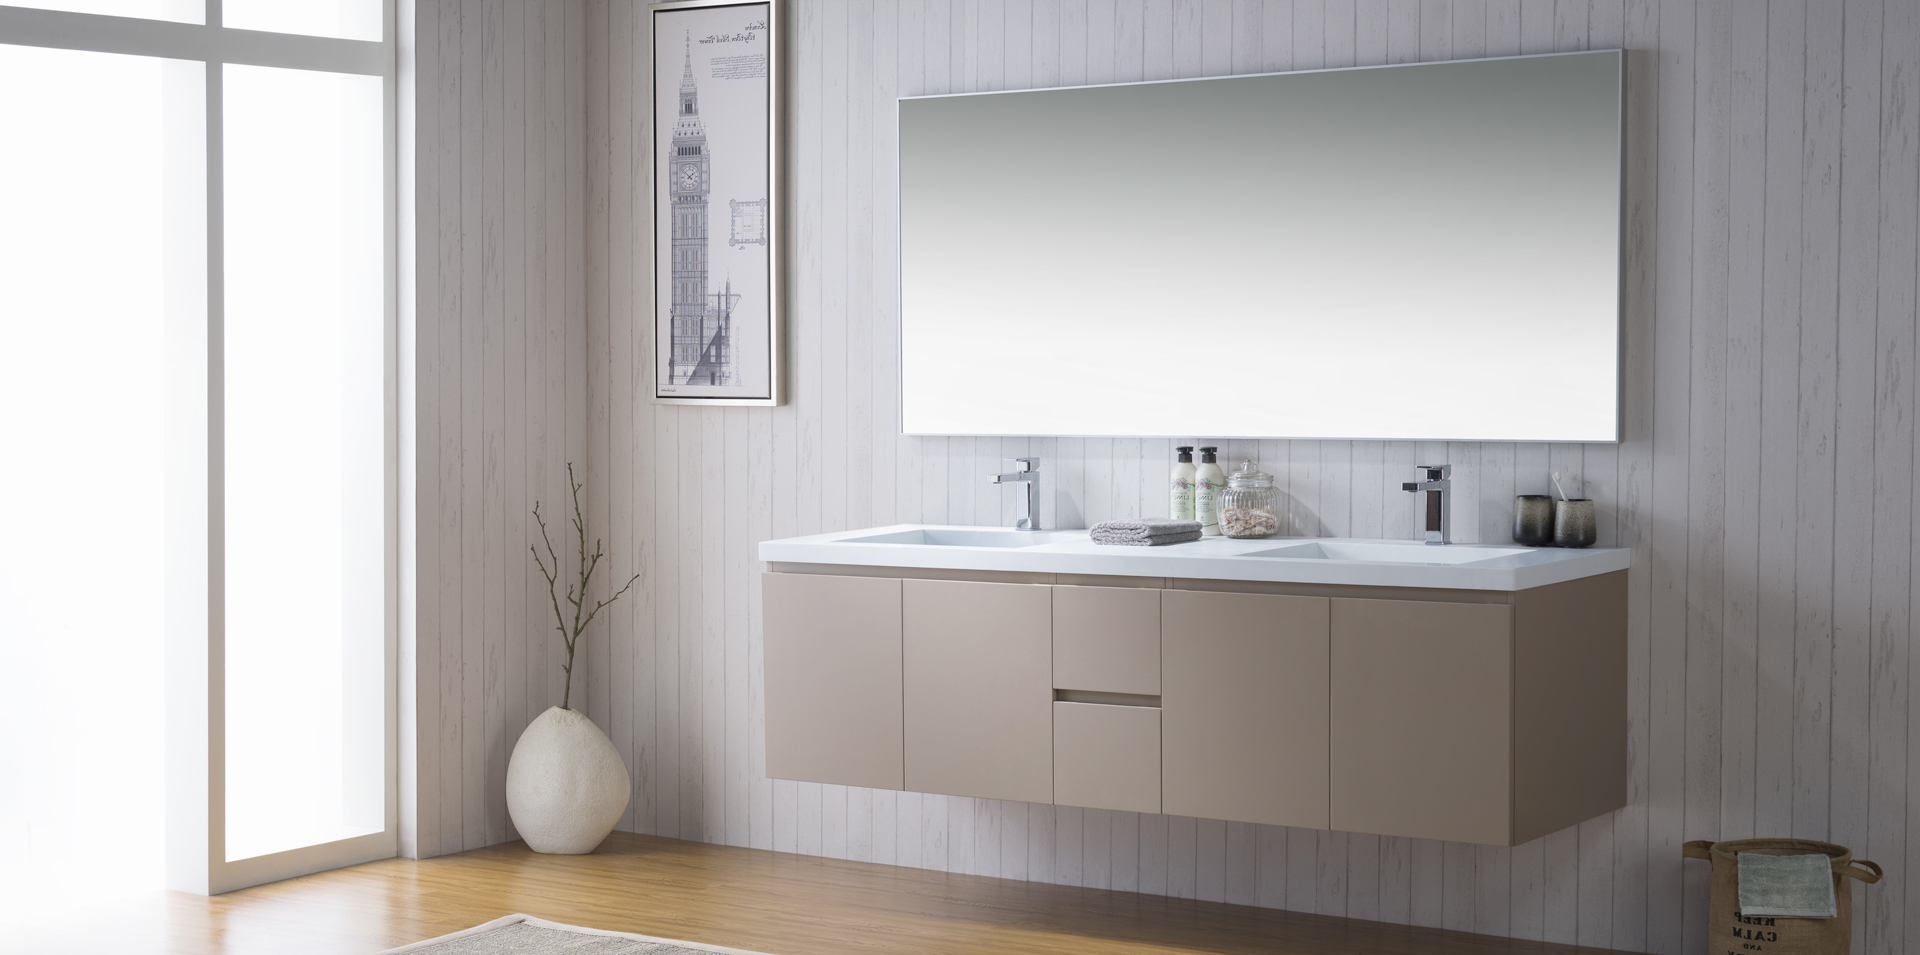 Modern Bathroom Vanities Cabinets Faucets Bathroom Place Miami - Bathroom vanities hialeah